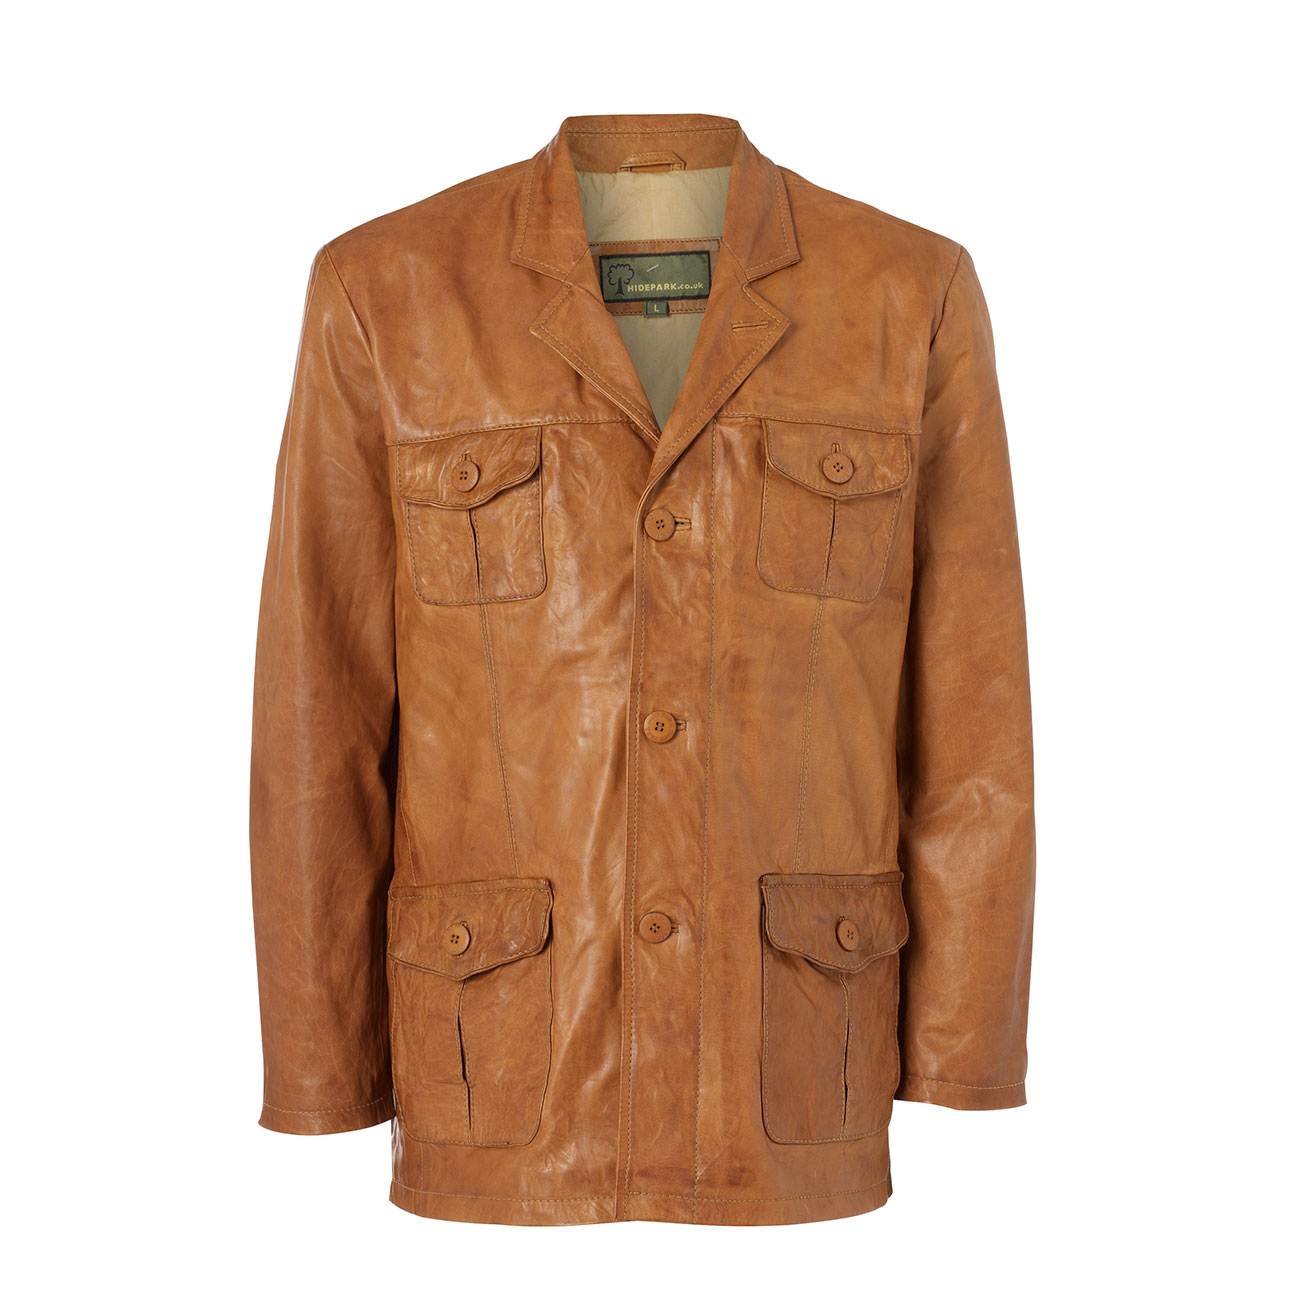 Gents Safari Leather jacket Tan Hank